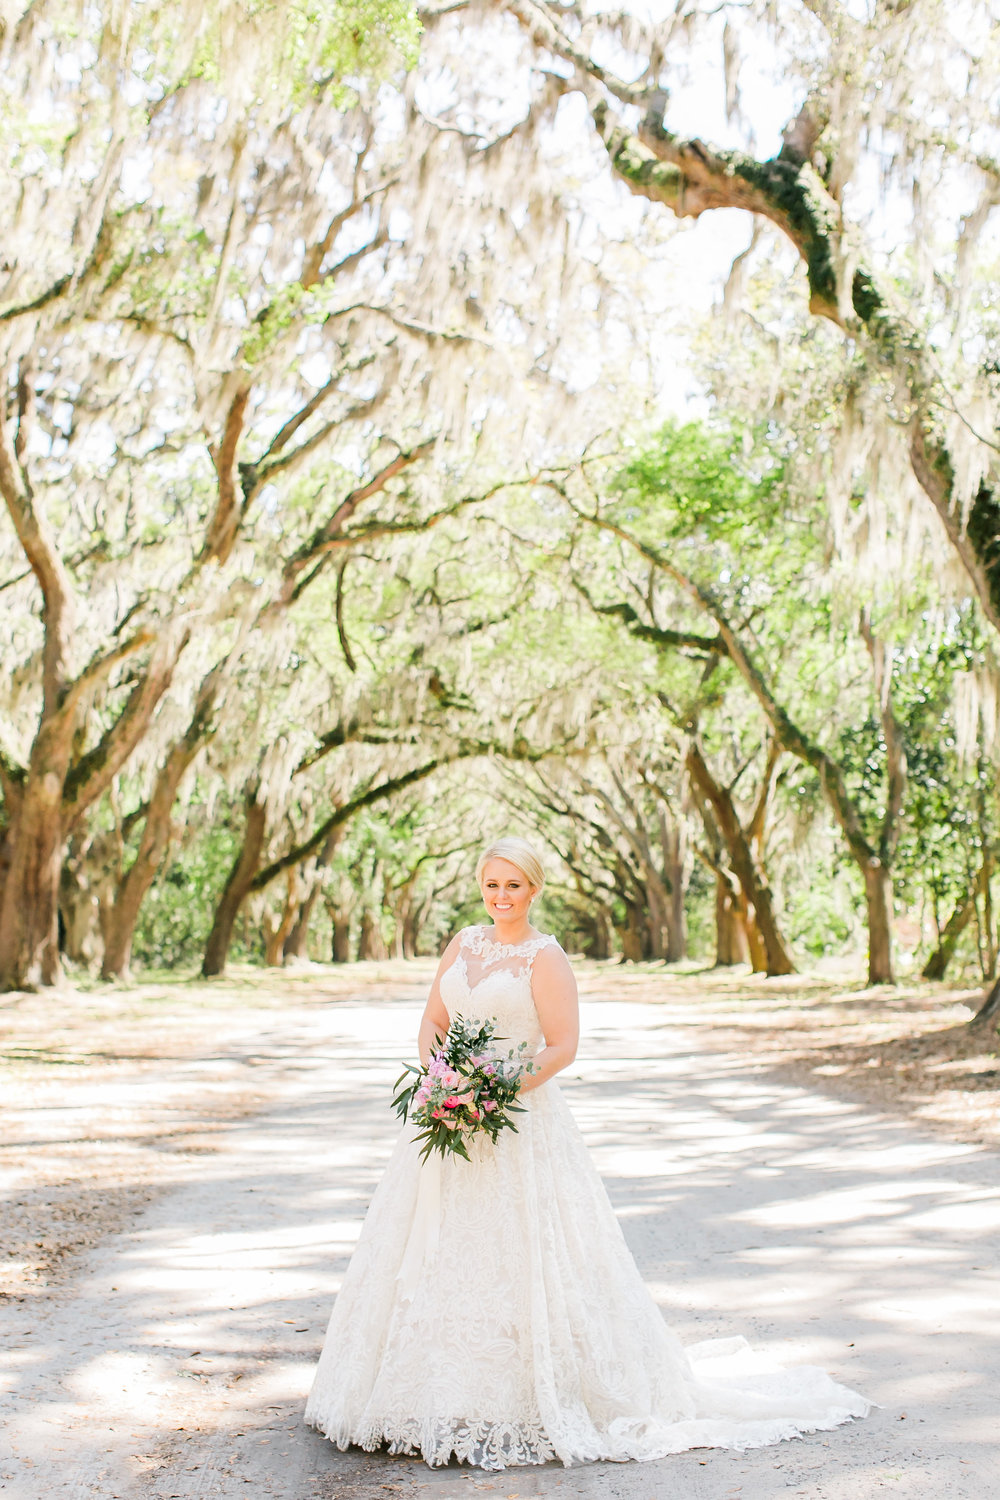 Savannah GA bride in lace gown for destination wedding at Wormsloe Plantation  //  A Lowcountry Wedding Magazine